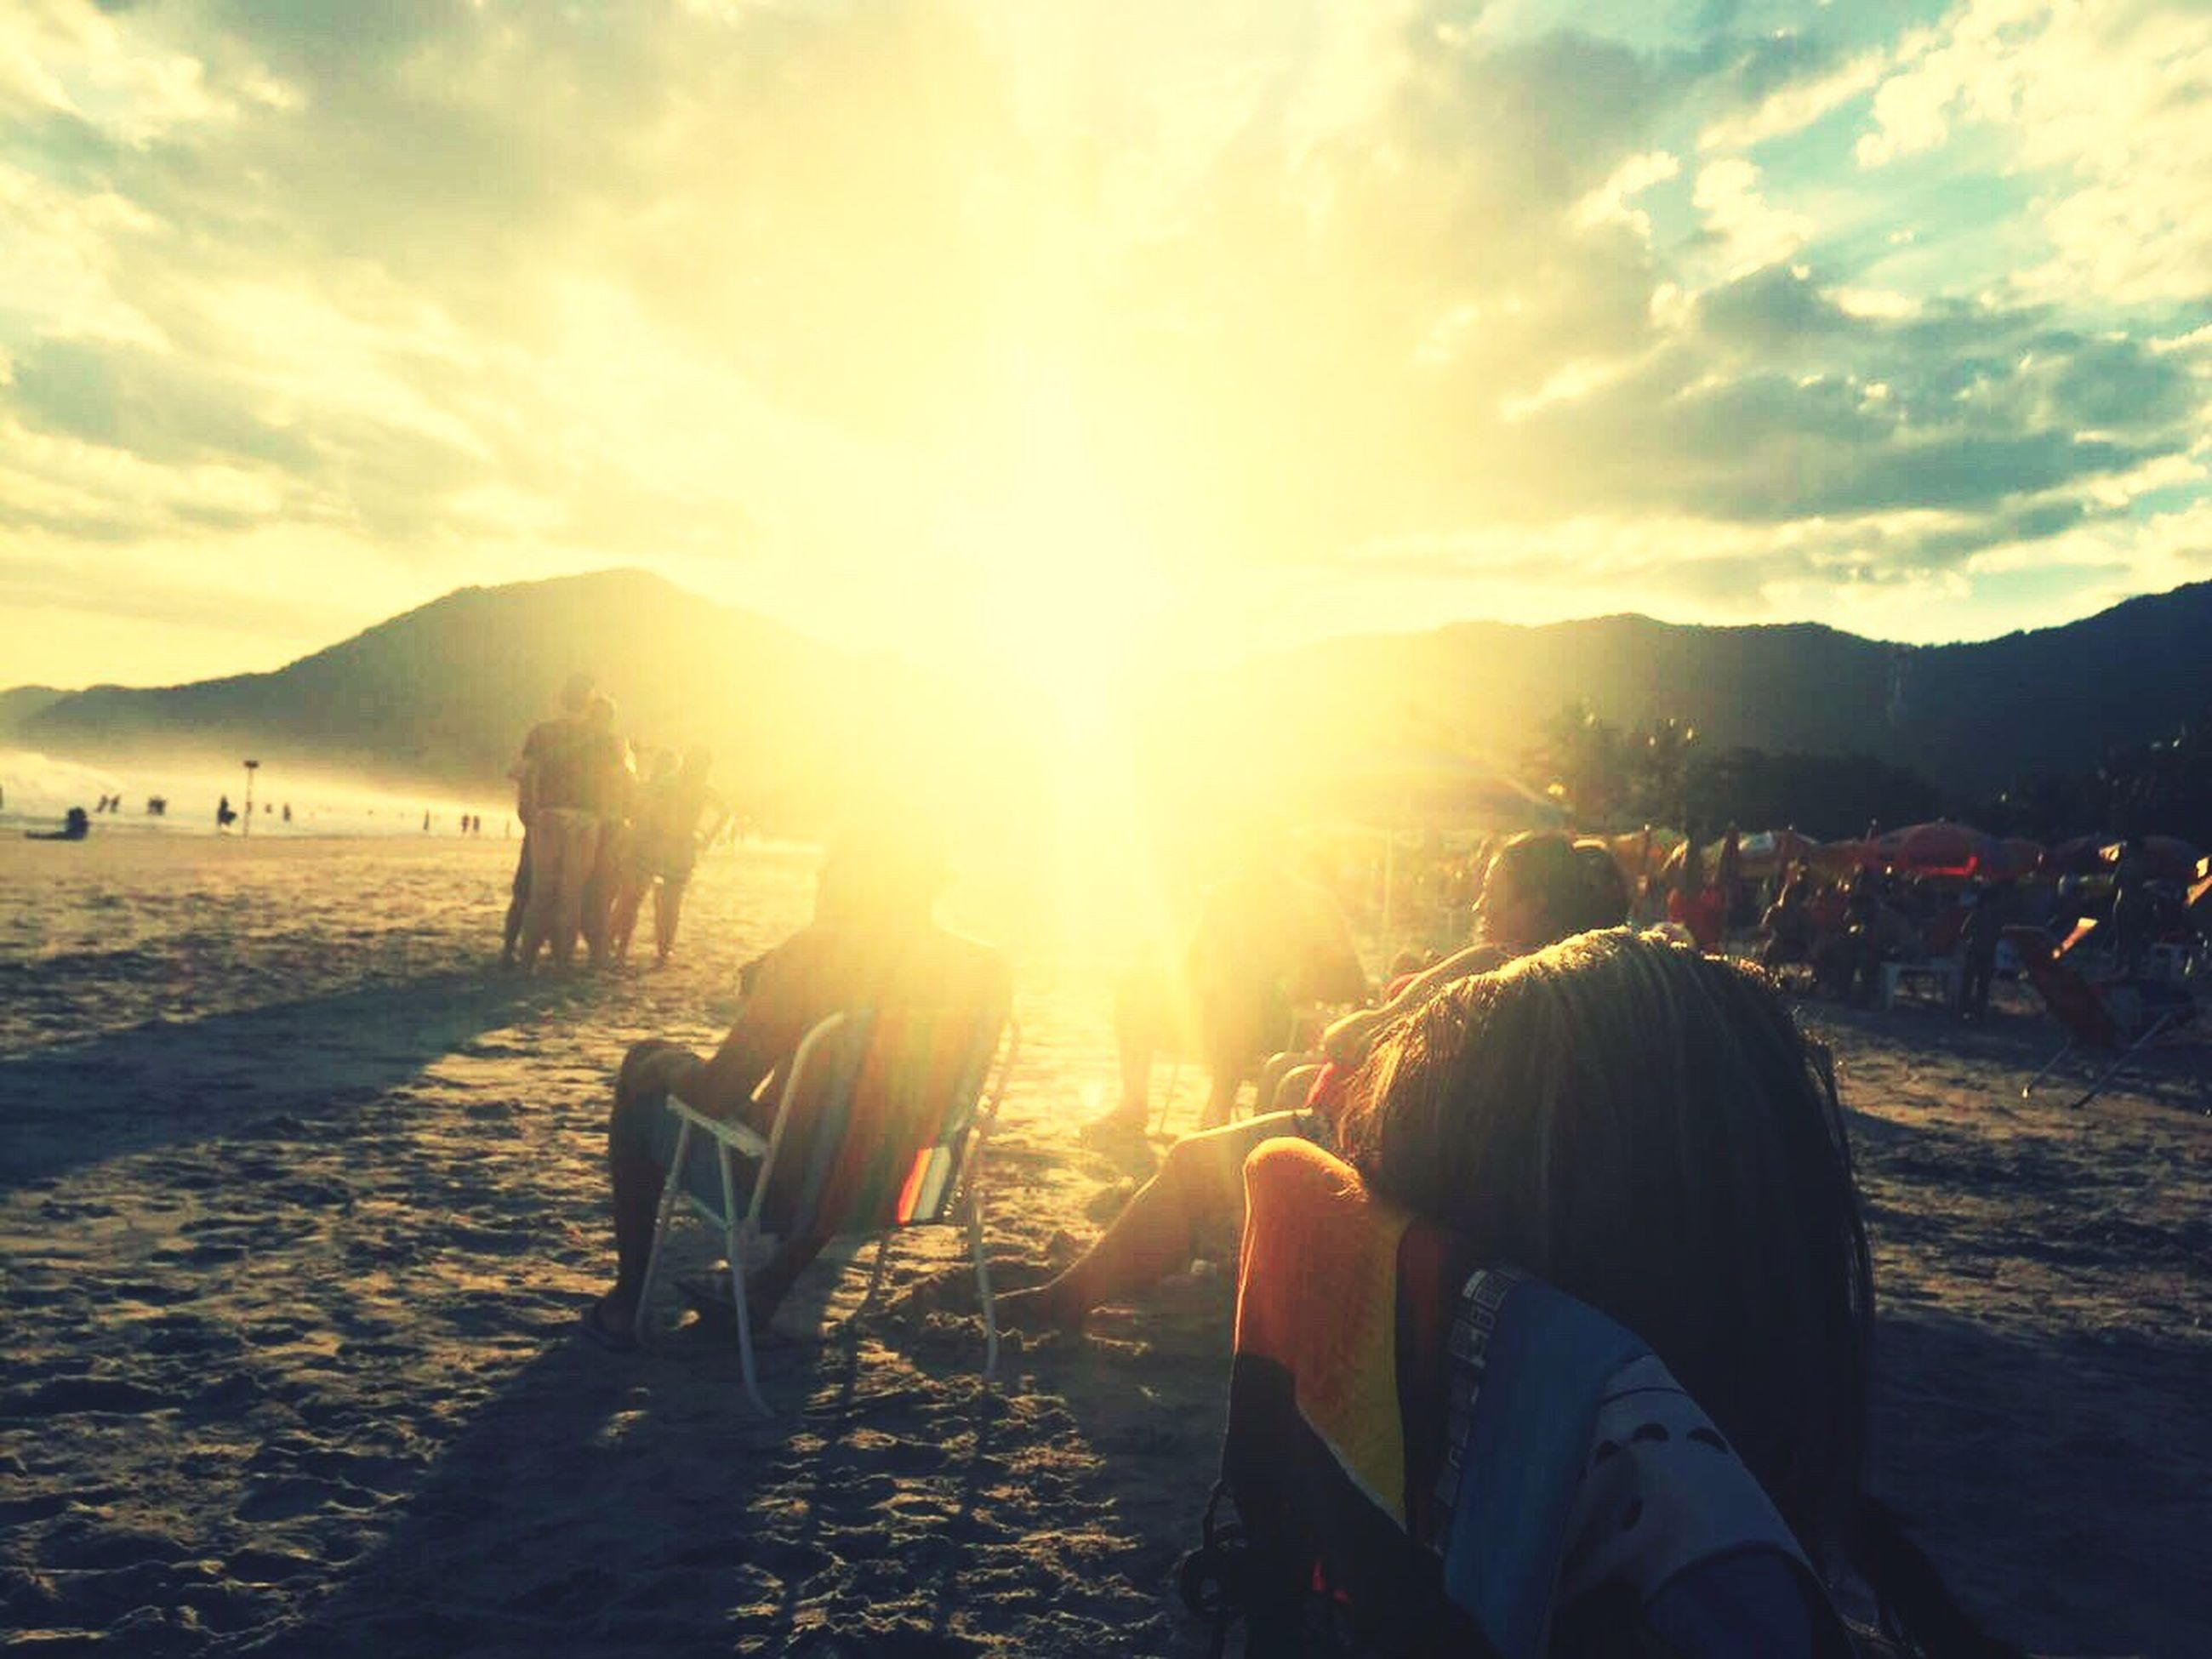 sun, sky, sunset, mountain, leisure activity, lifestyles, sunlight, sunbeam, beach, cloud - sky, person, scenics, lens flare, water, beauty in nature, nature, vacations, sitting